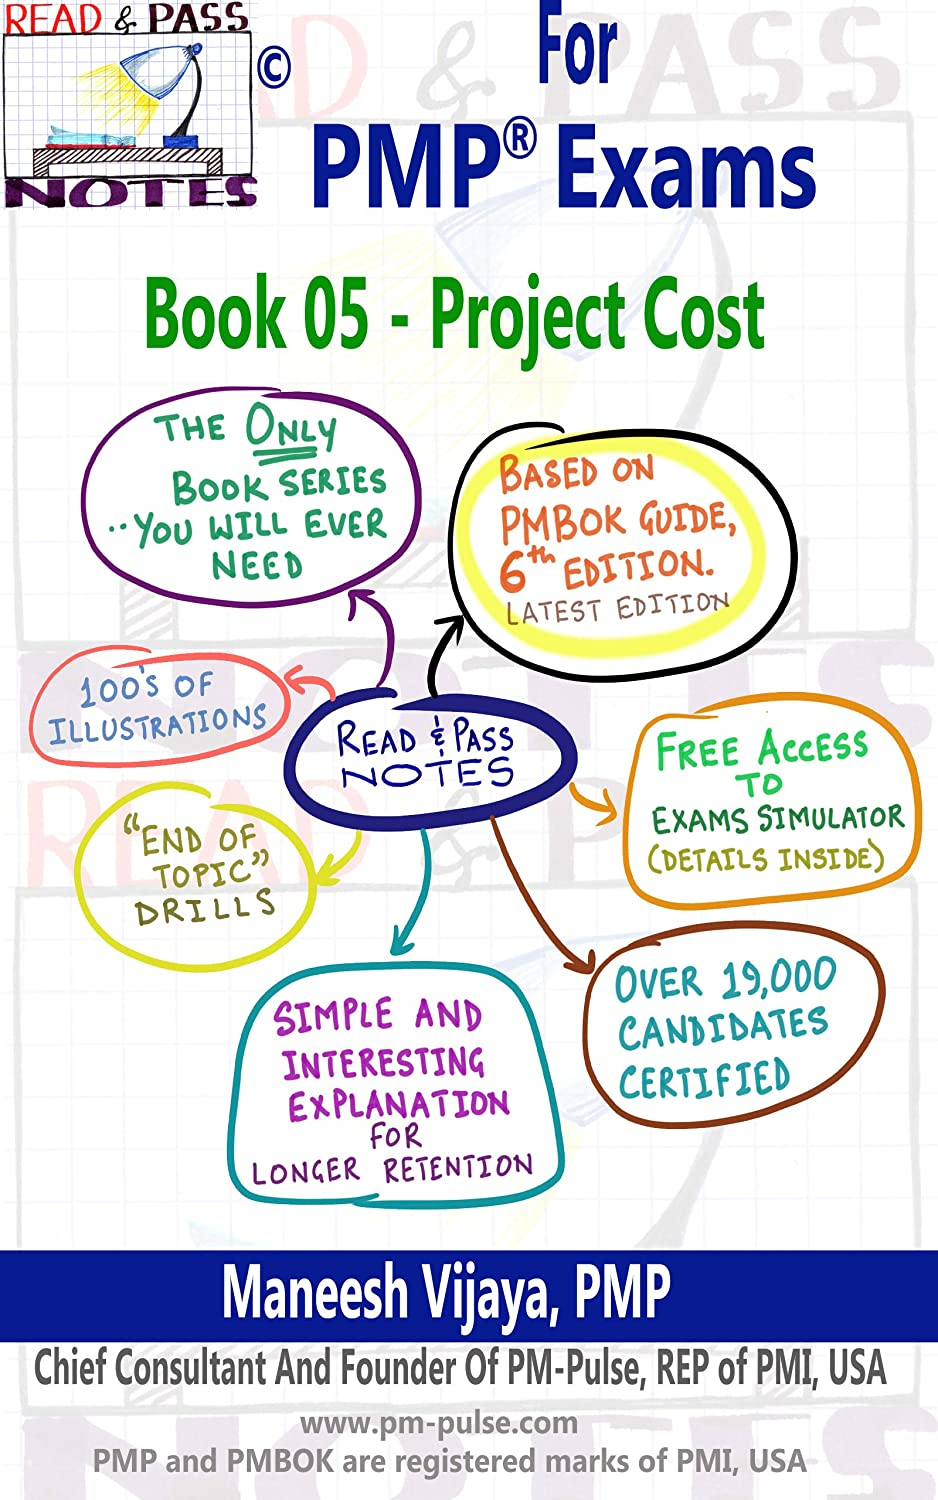 PMP Exams - Book 05 - Project Cost Mgmt  (Based on PMBOK